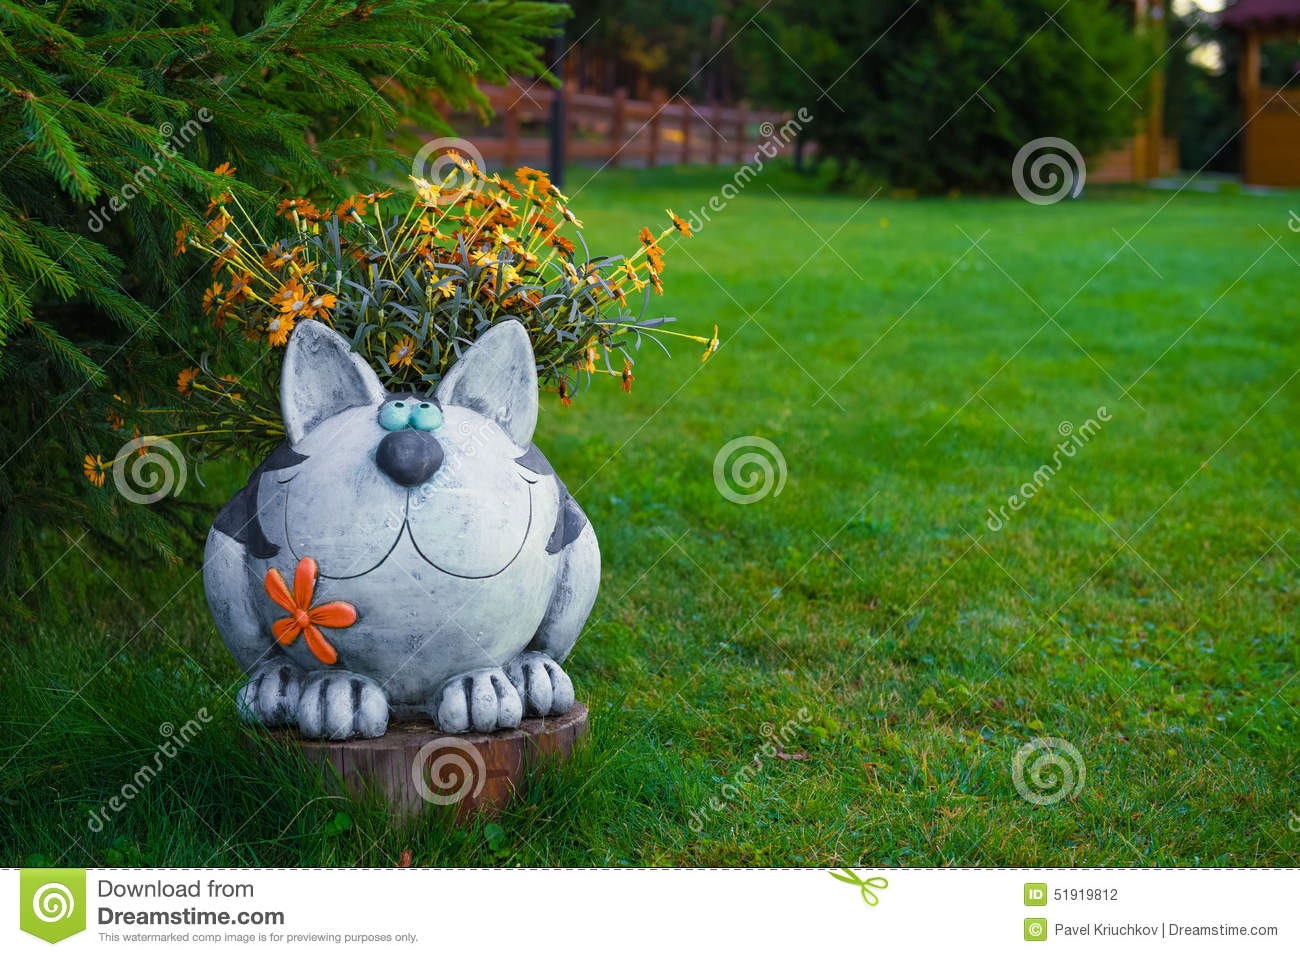 Download Garden Figures   The Cat In The Garden Stock Photo   Image Of Lawn,